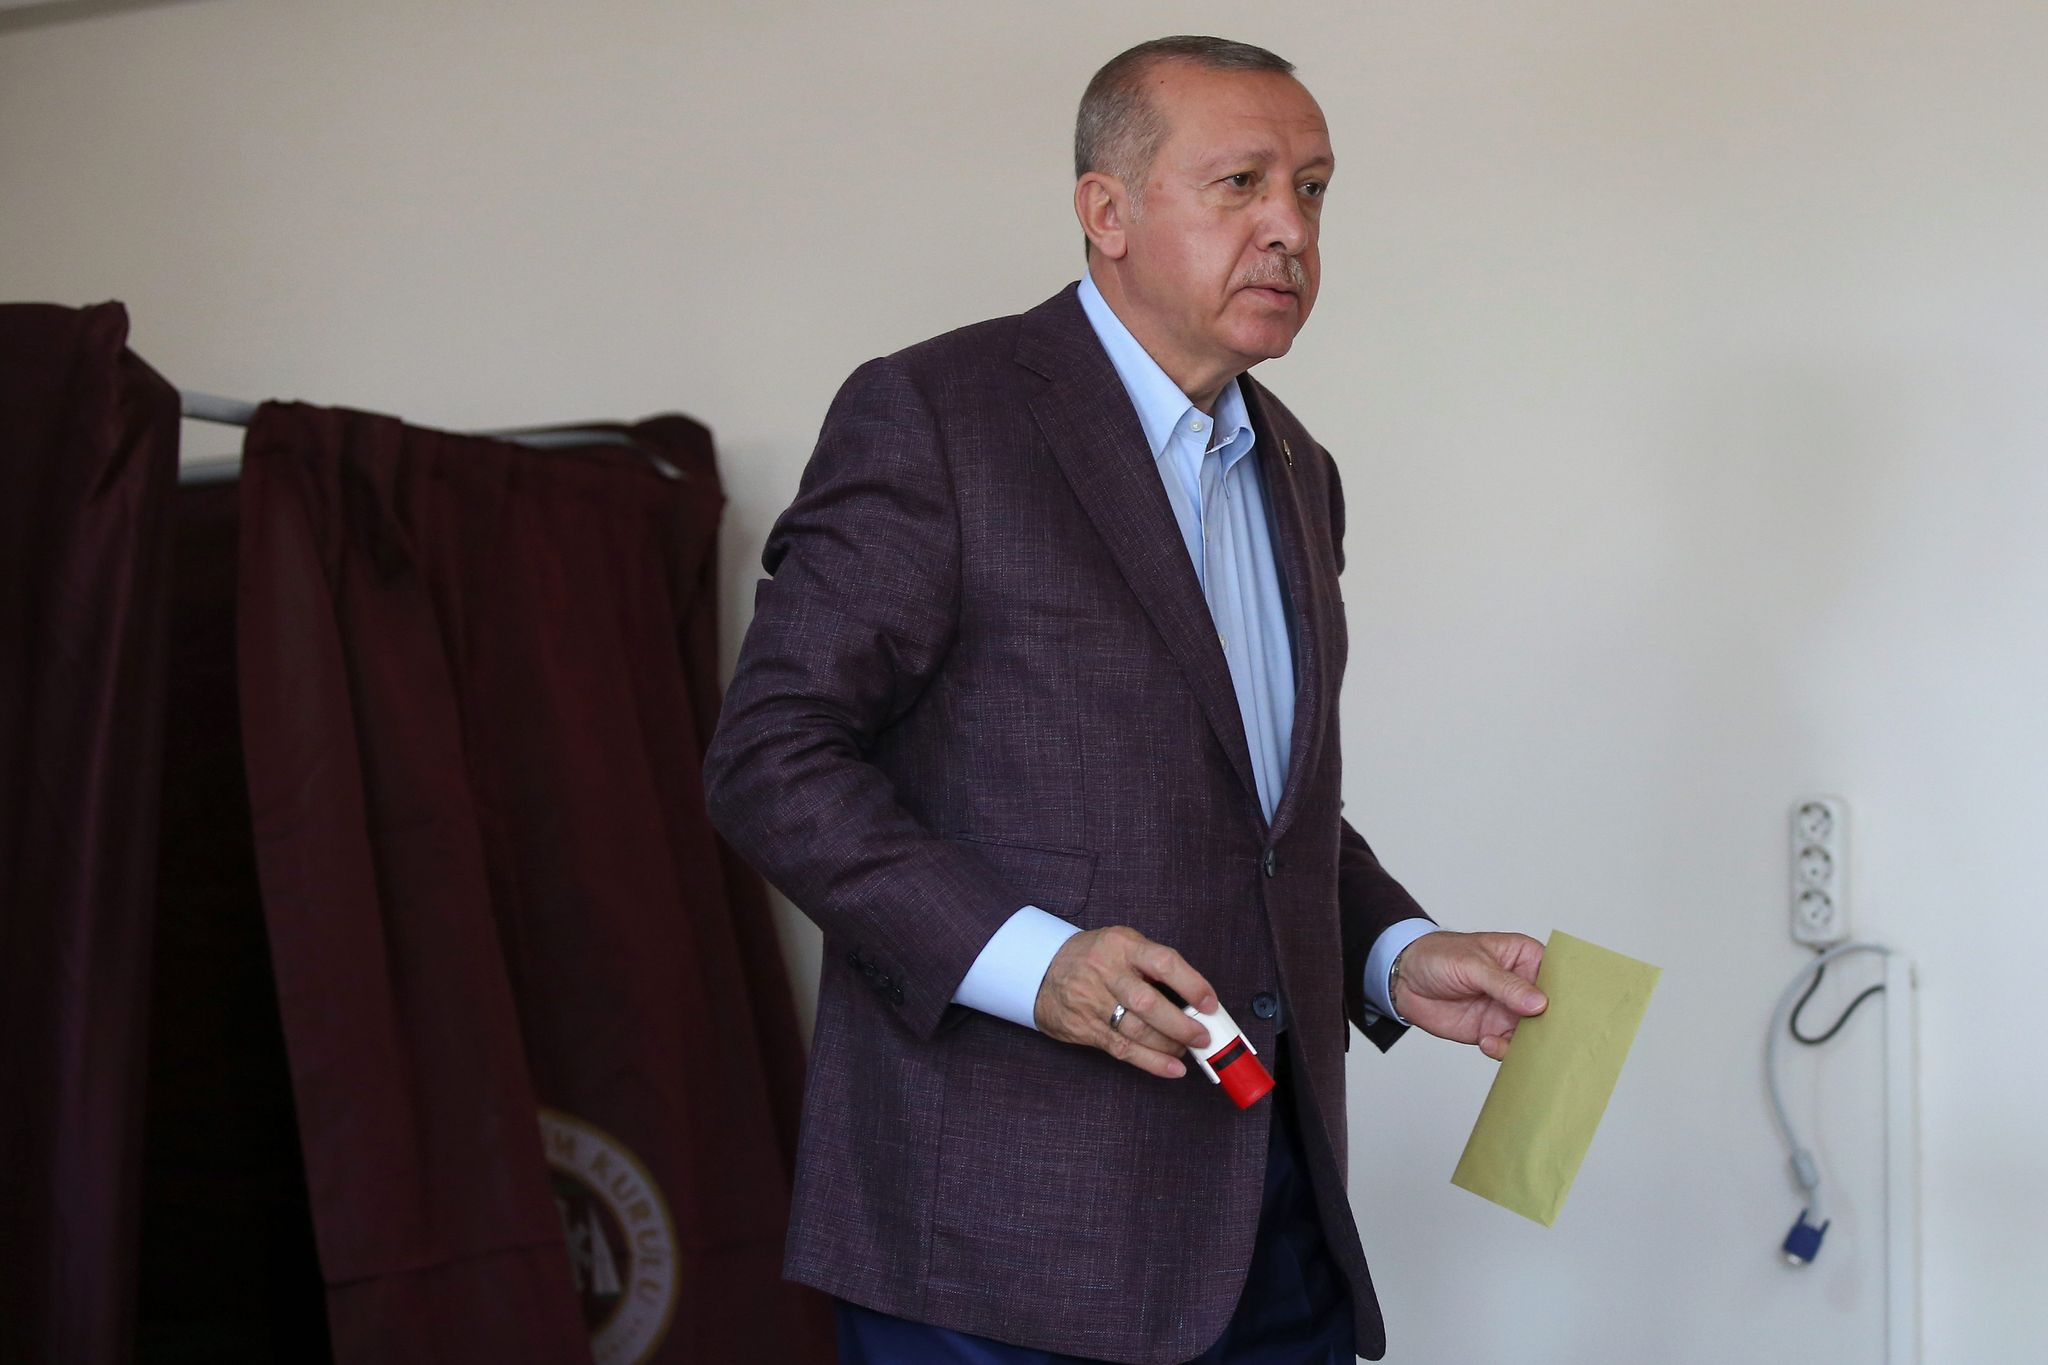 Backers, foes weigh cost to Recep Tayyip Erdogan of Istanbul defeat